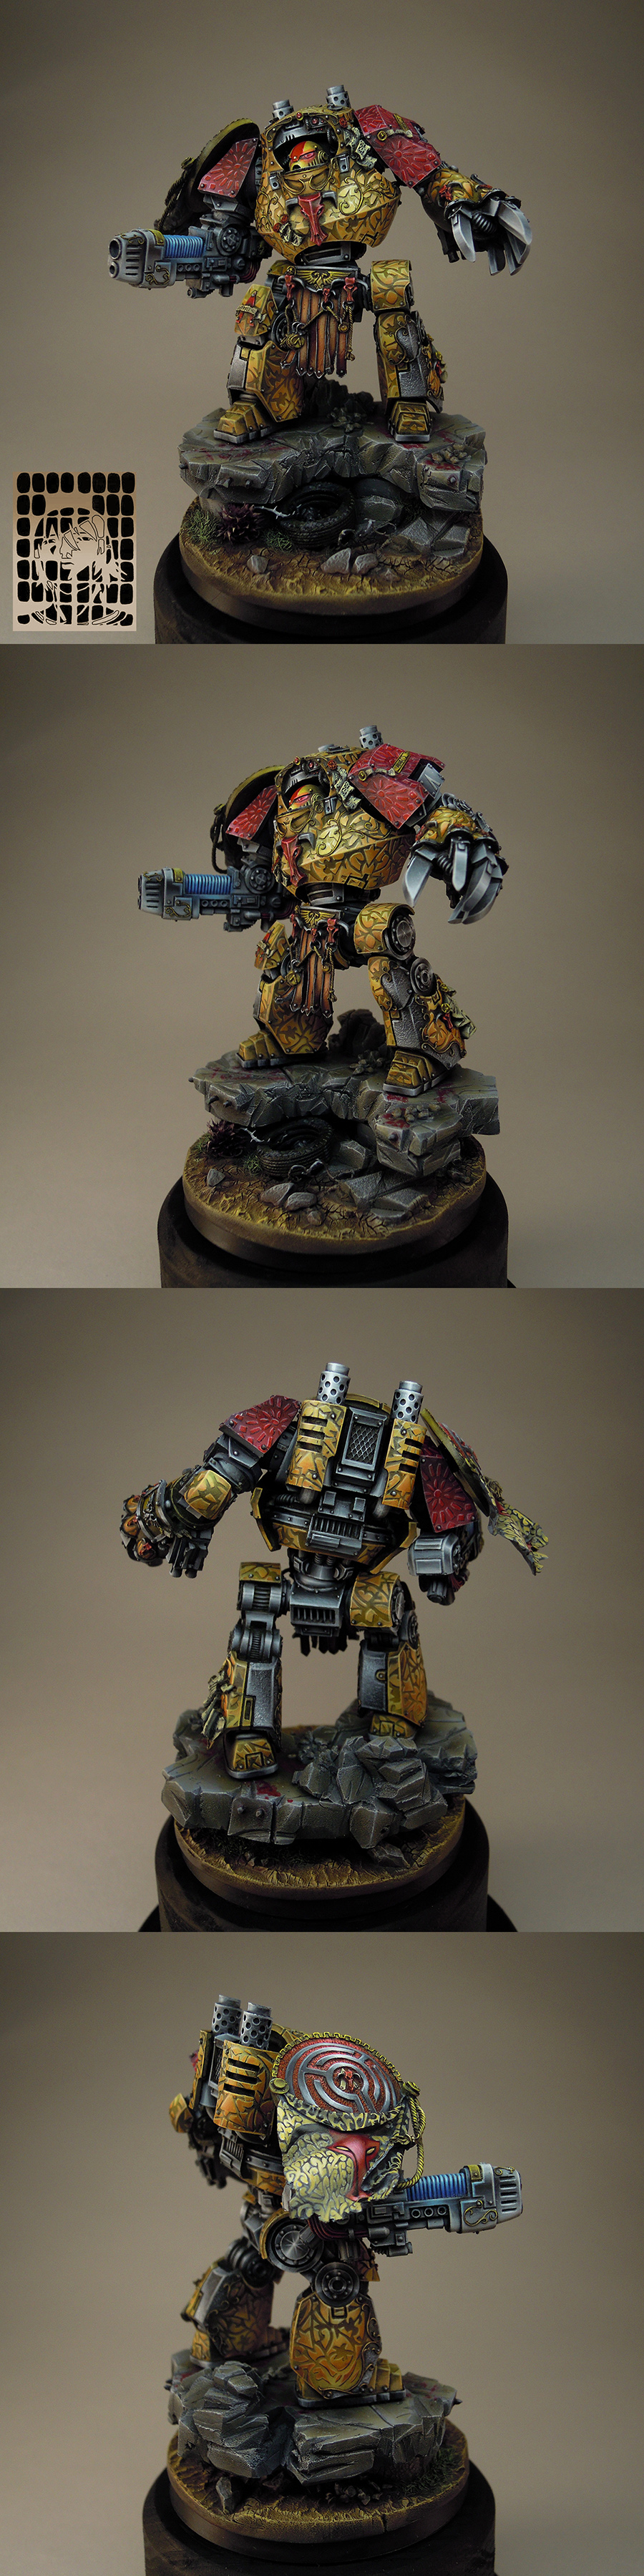 Hecaton Aiakos Minotaurs Contemptor Dreadnought, Nice Day Ver.